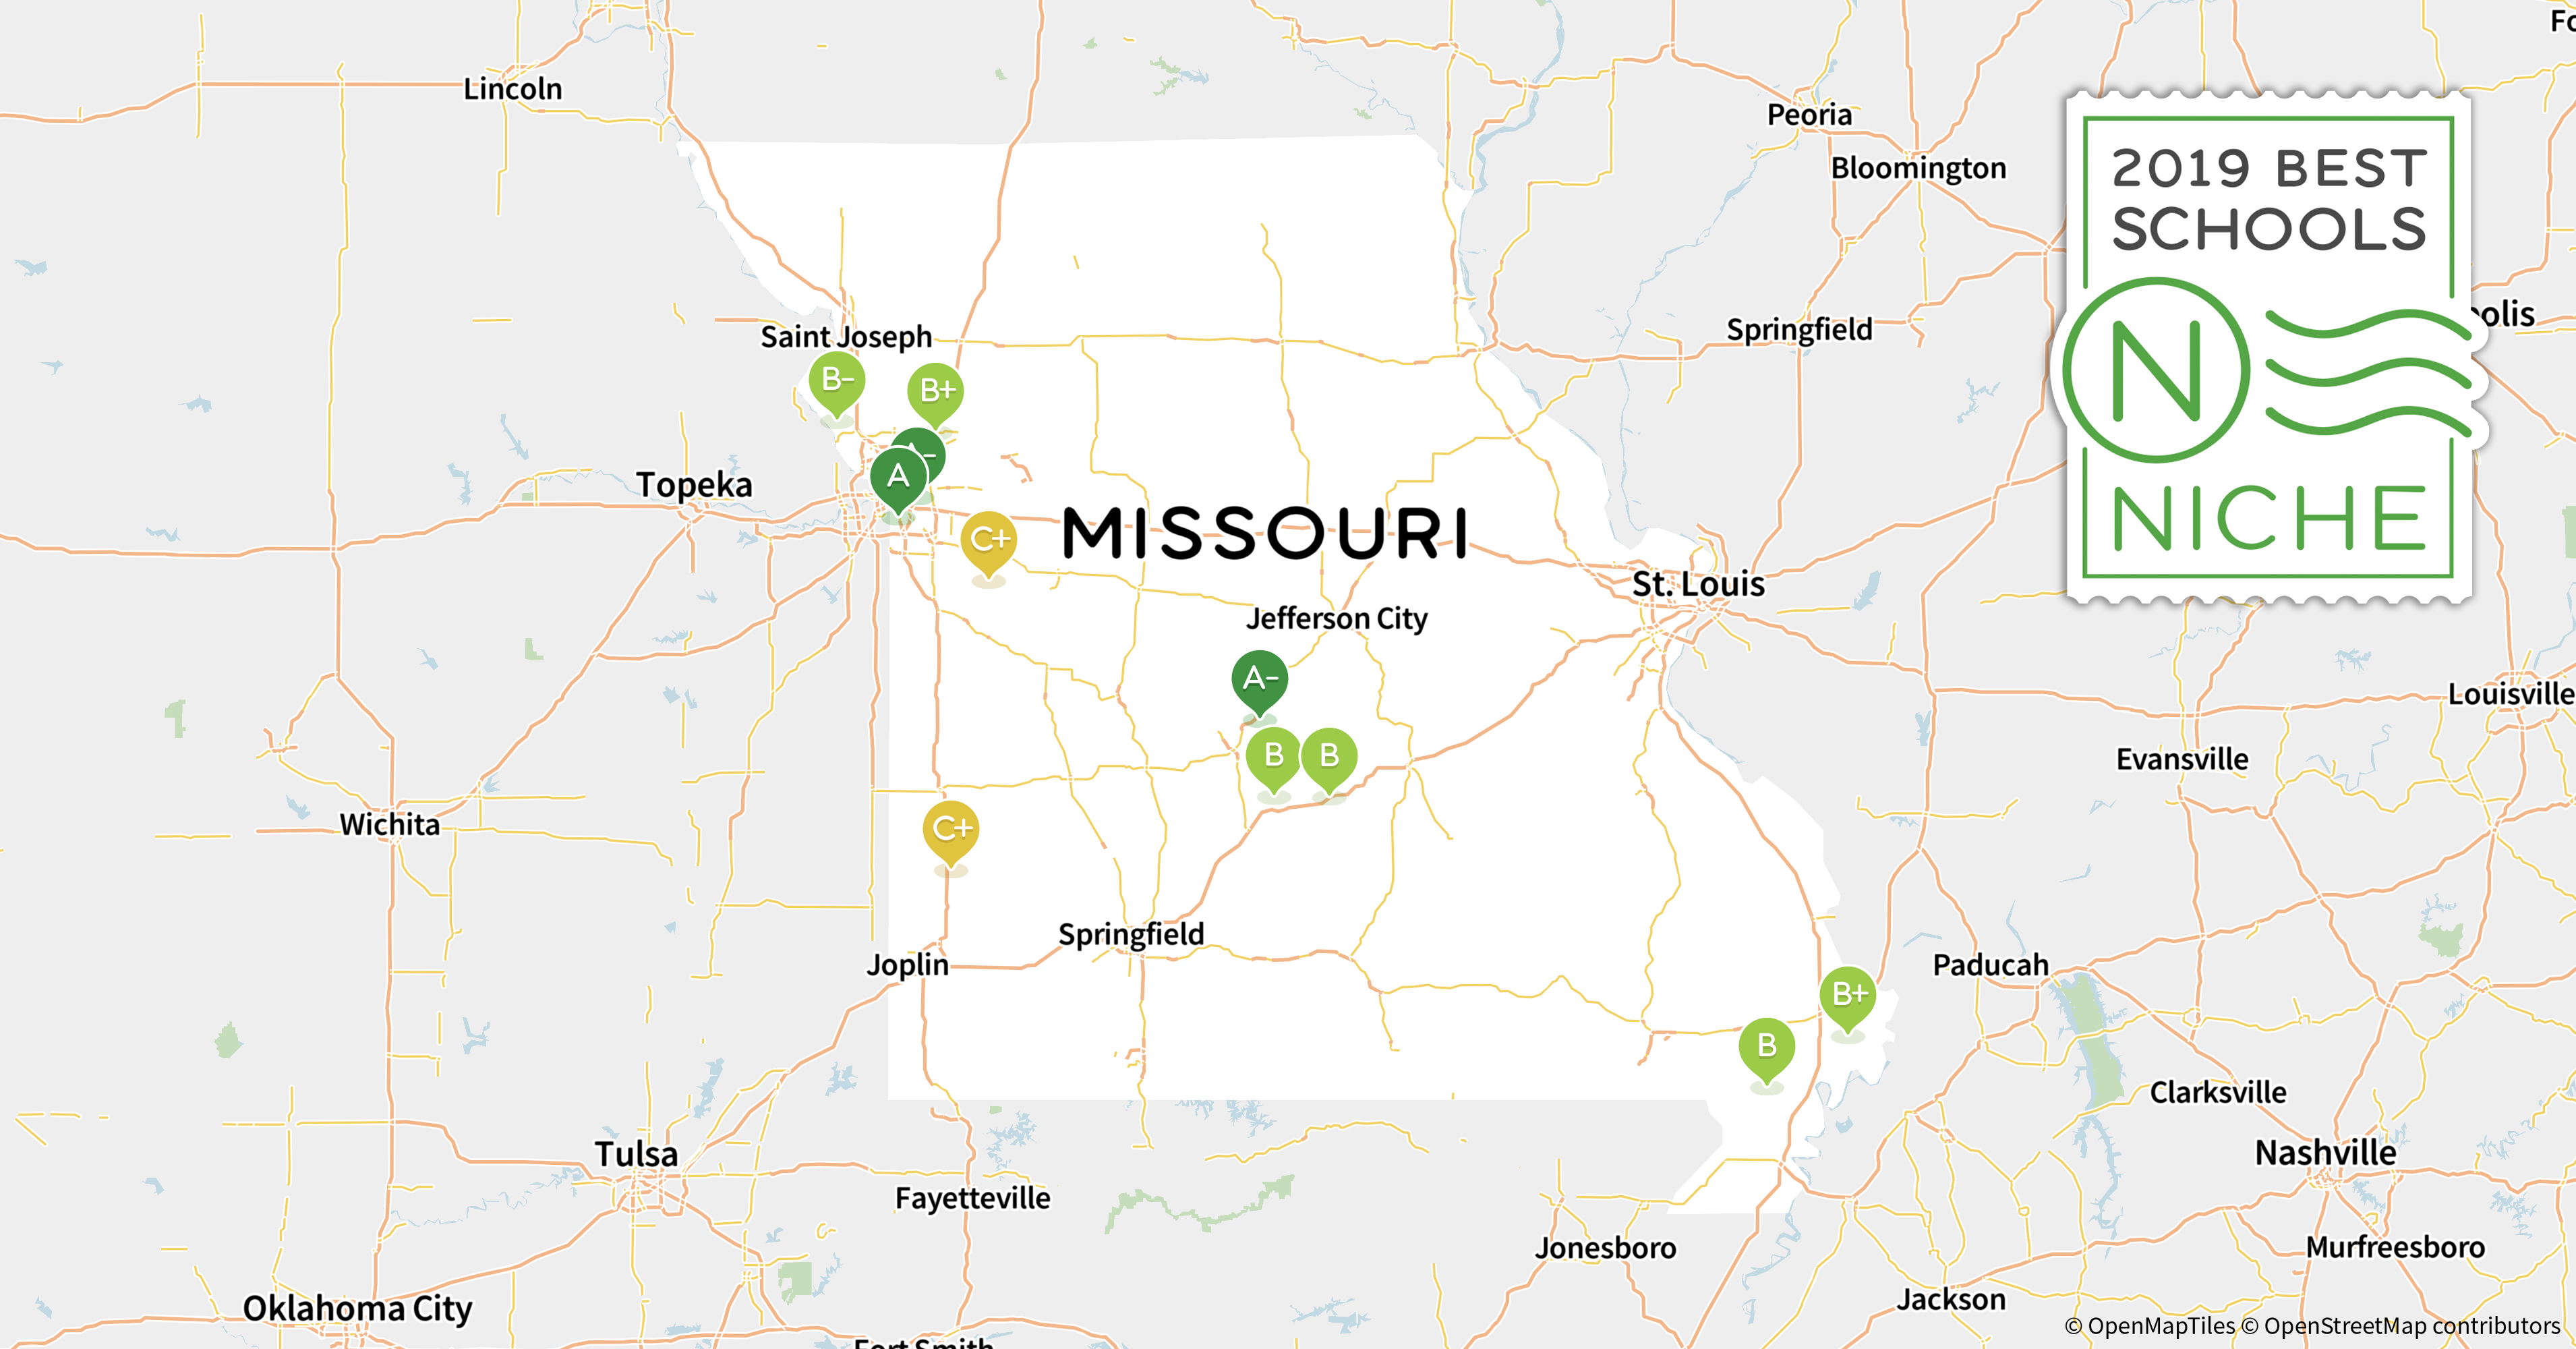 Northwest Missouri Map.2019 Best School Districts In Missouri Niche